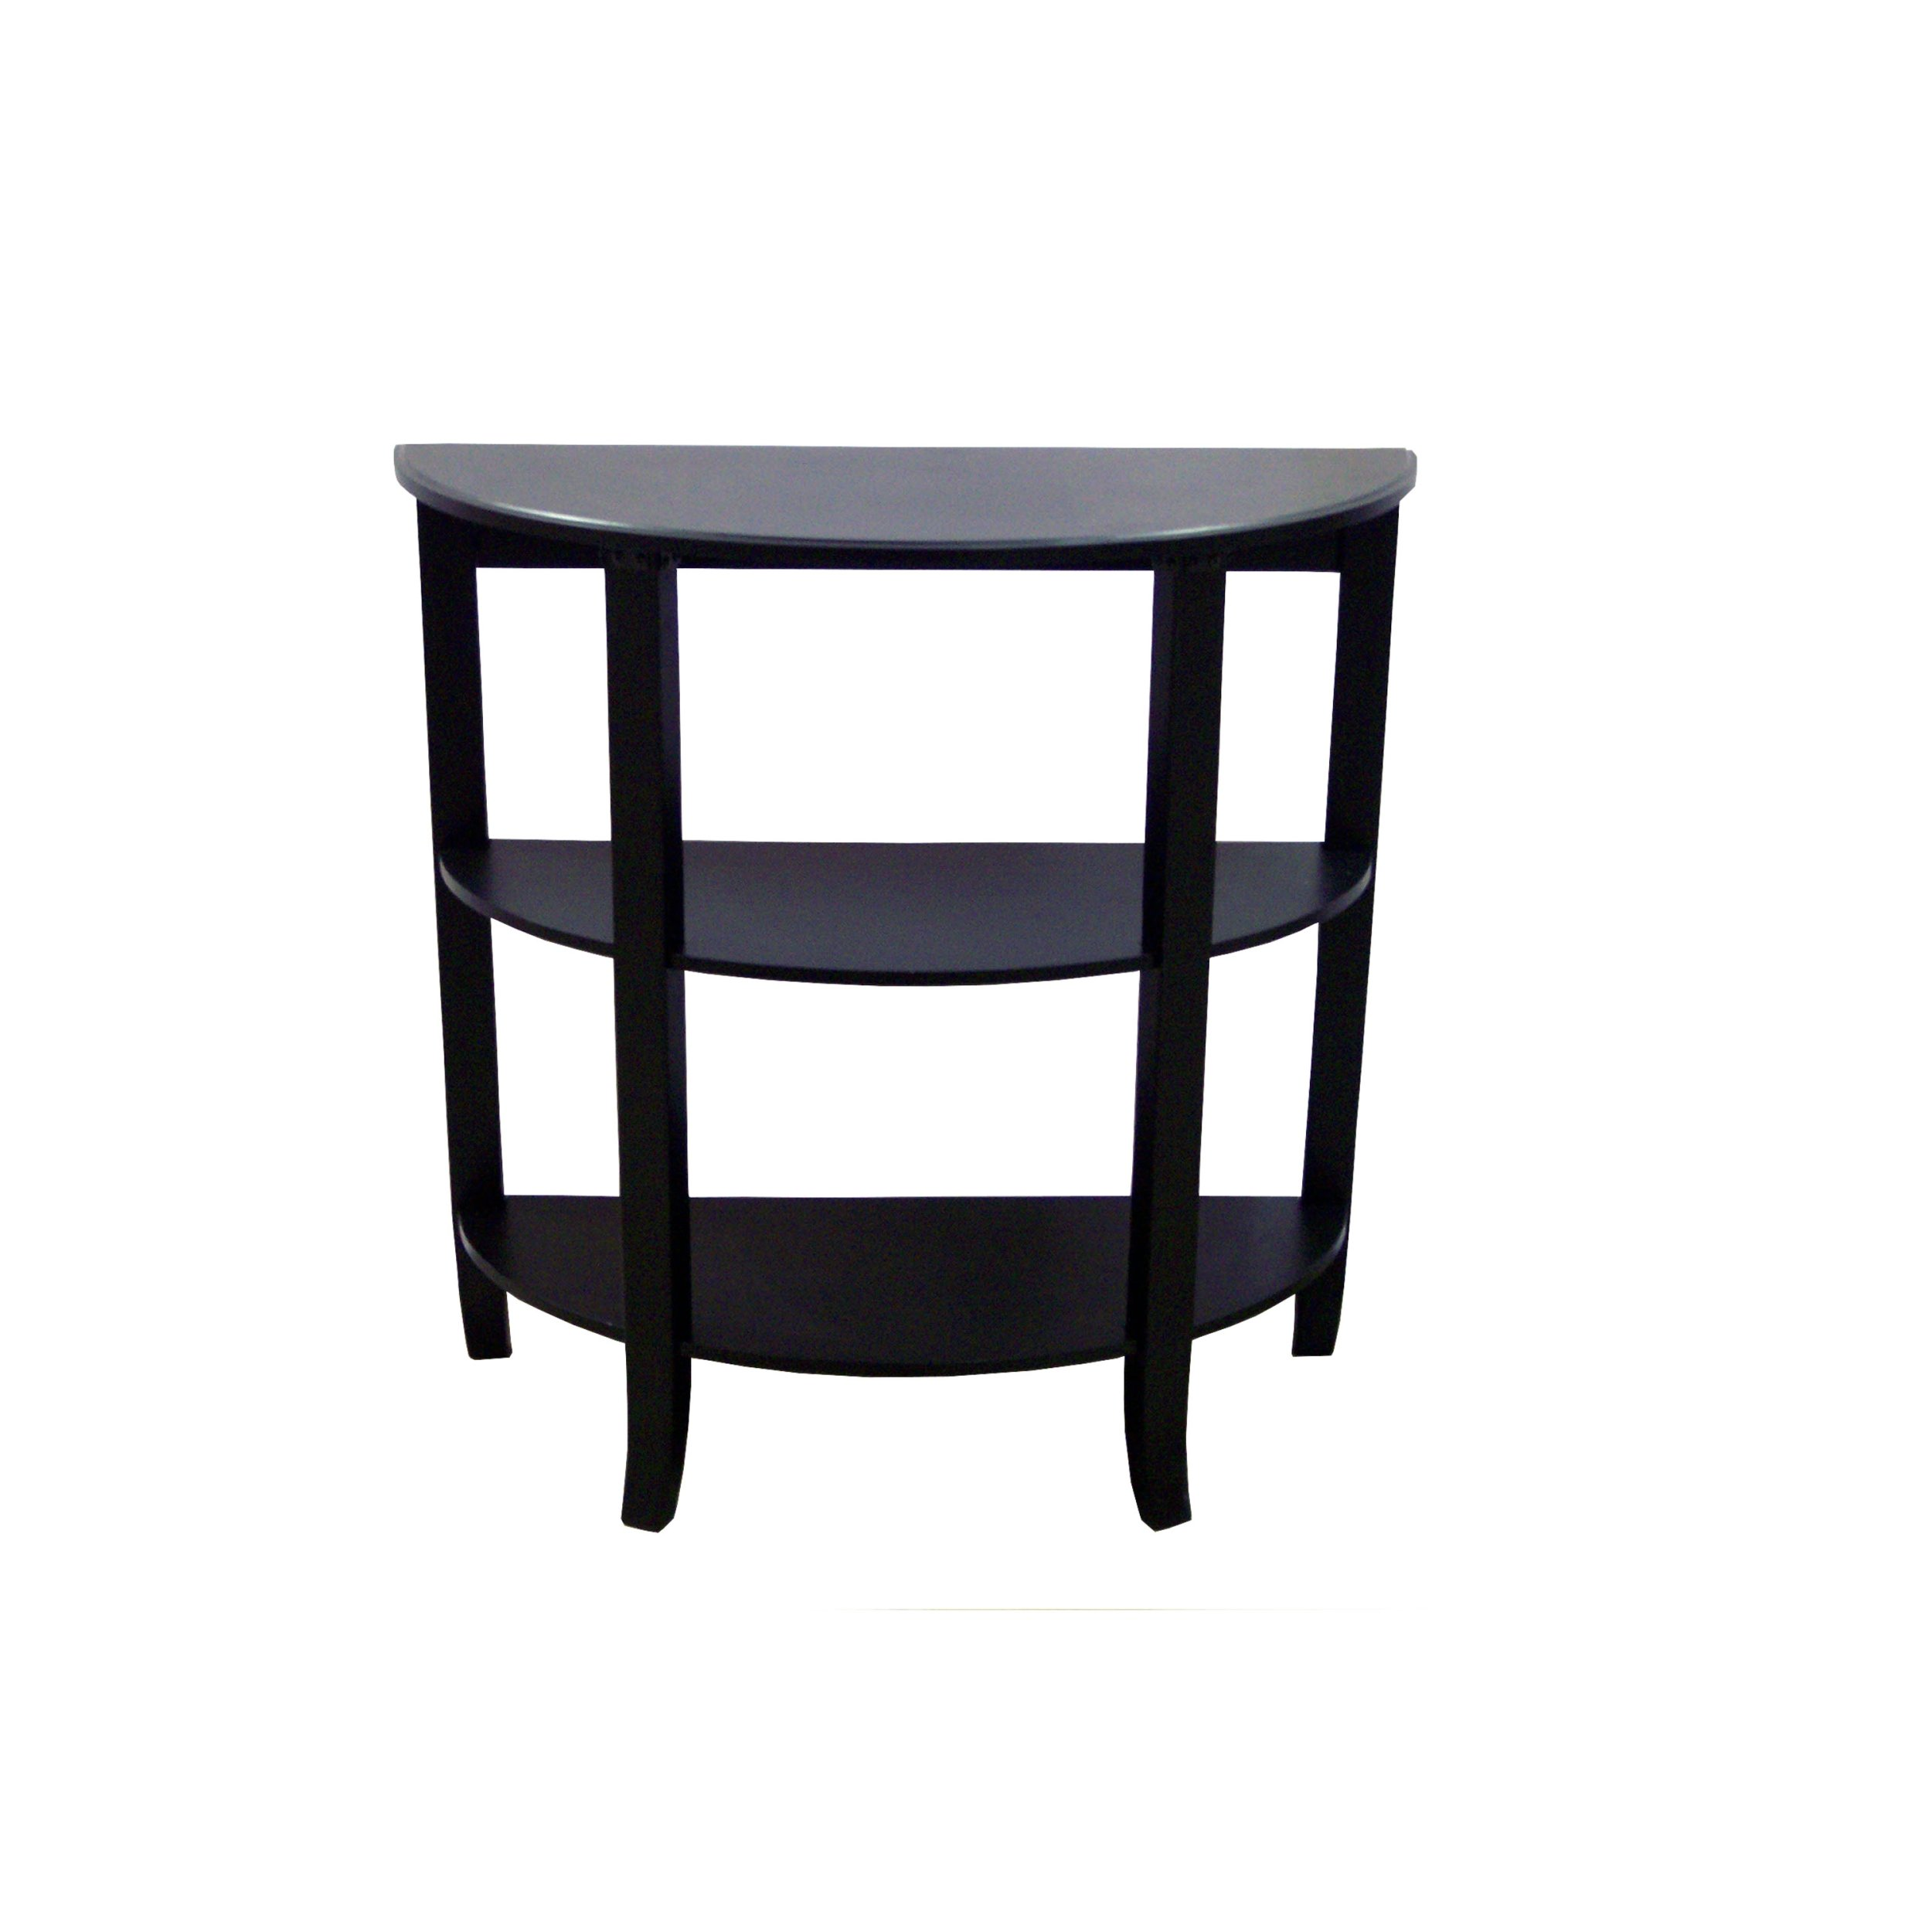 Target Marketing Systems London Collection 3 Tier Oval Hall Table with Flat Back, Black